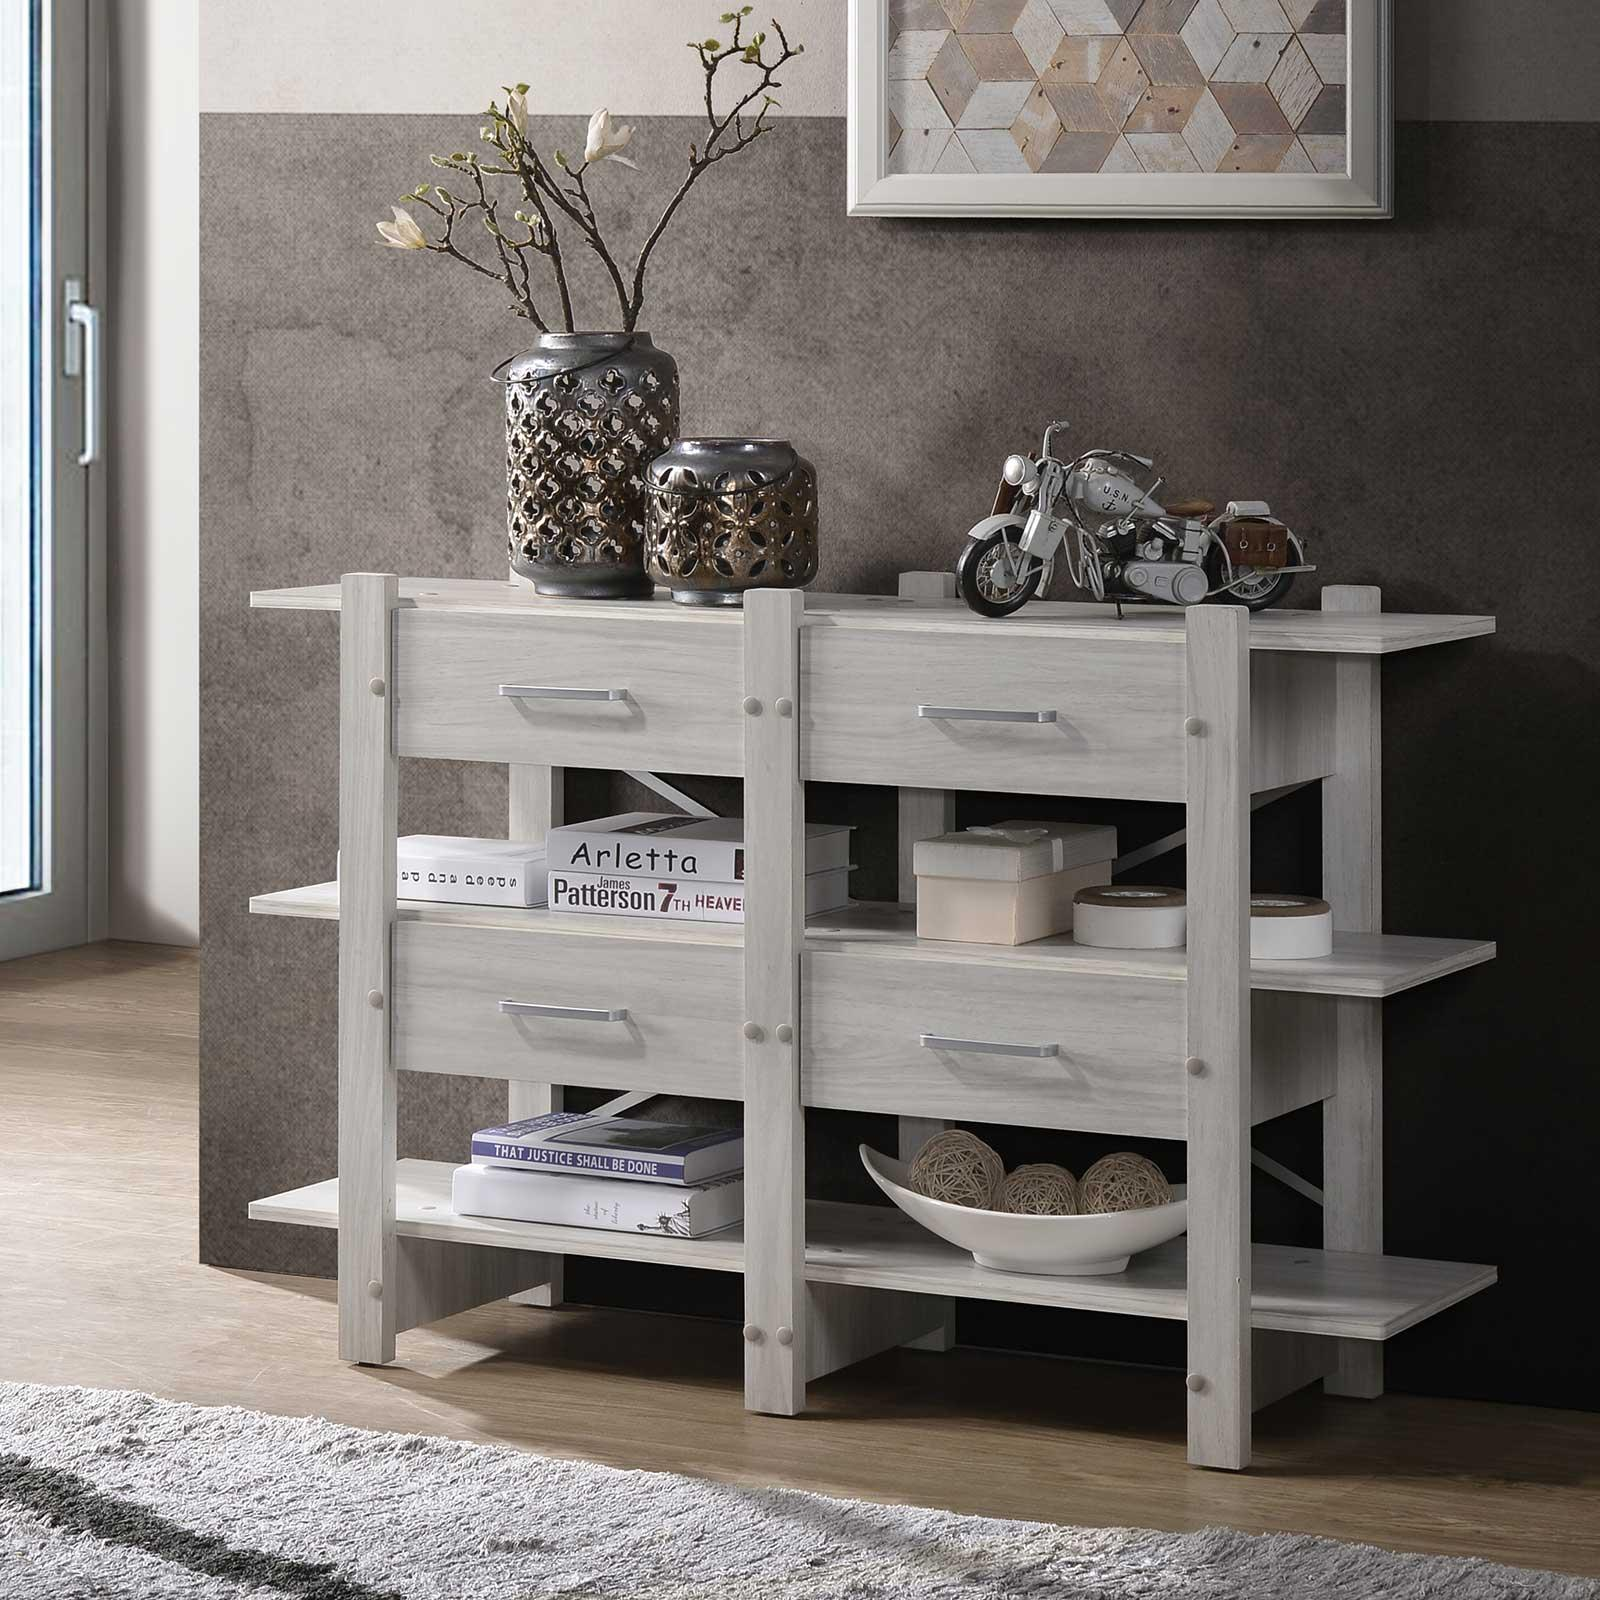 Sideboard Buffet Table (Free Installation + Delivery) Storage Cabinet White Oak E-LIVING Furniture